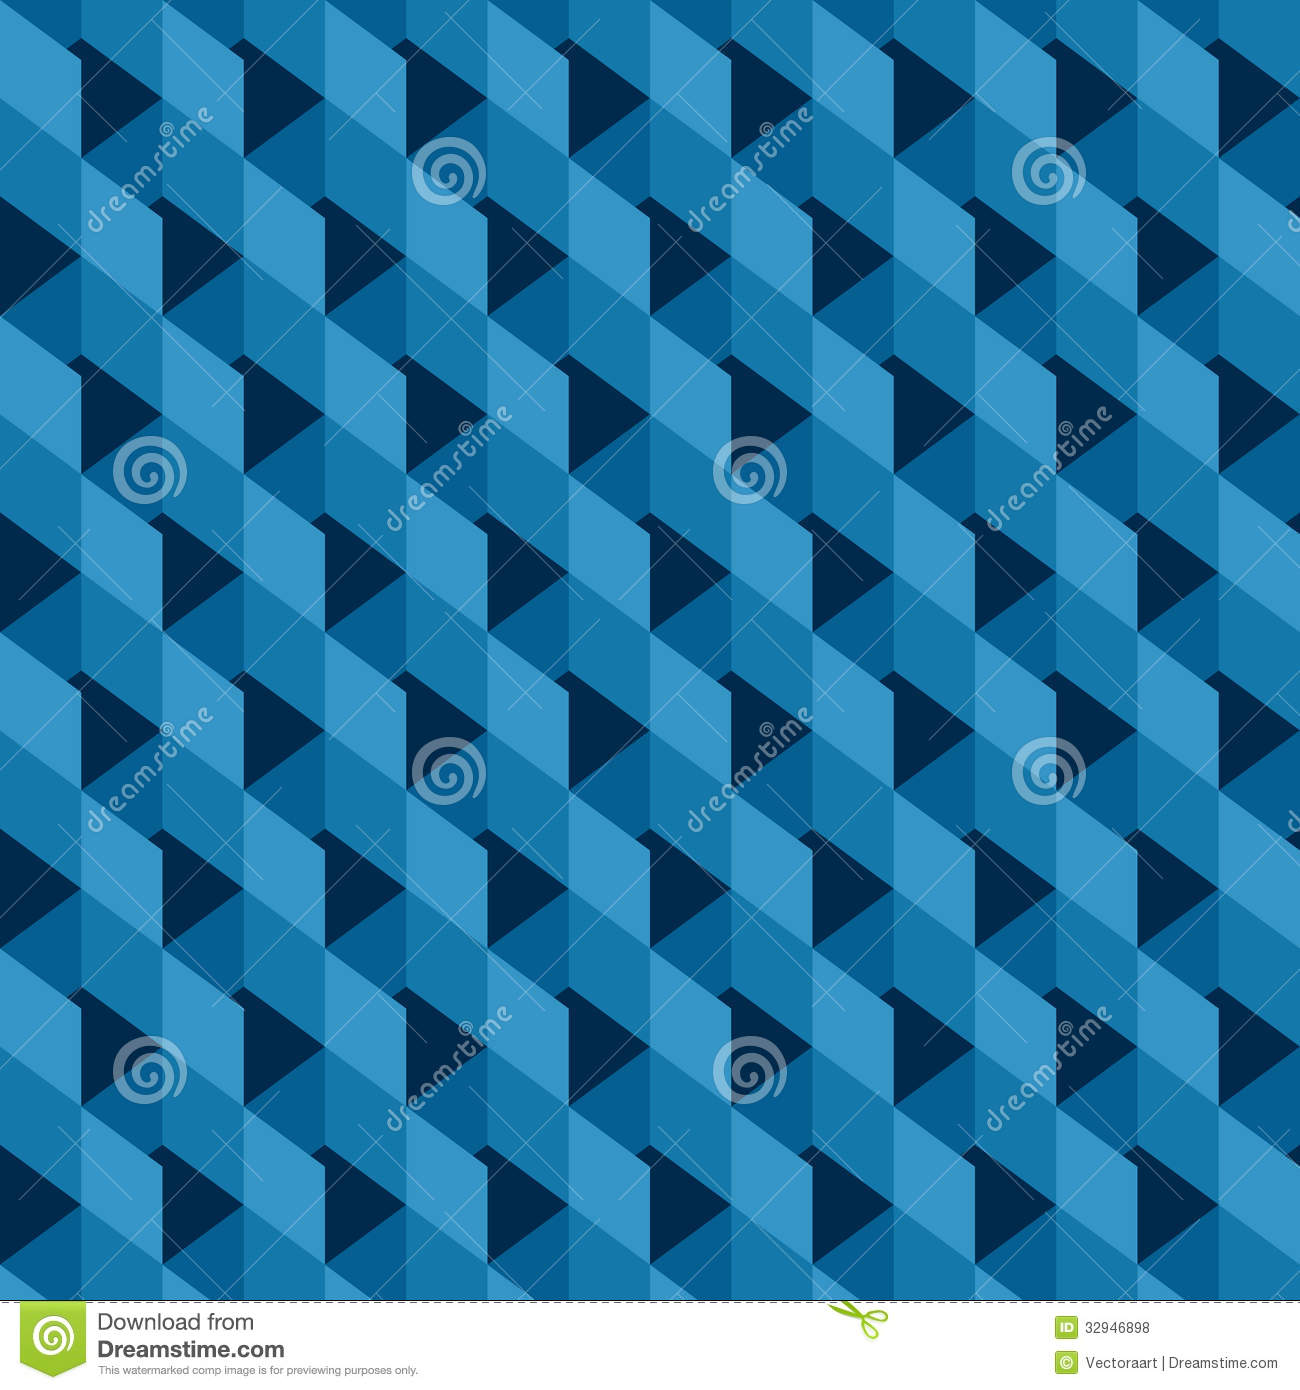 Blue square pattern background - photo#8